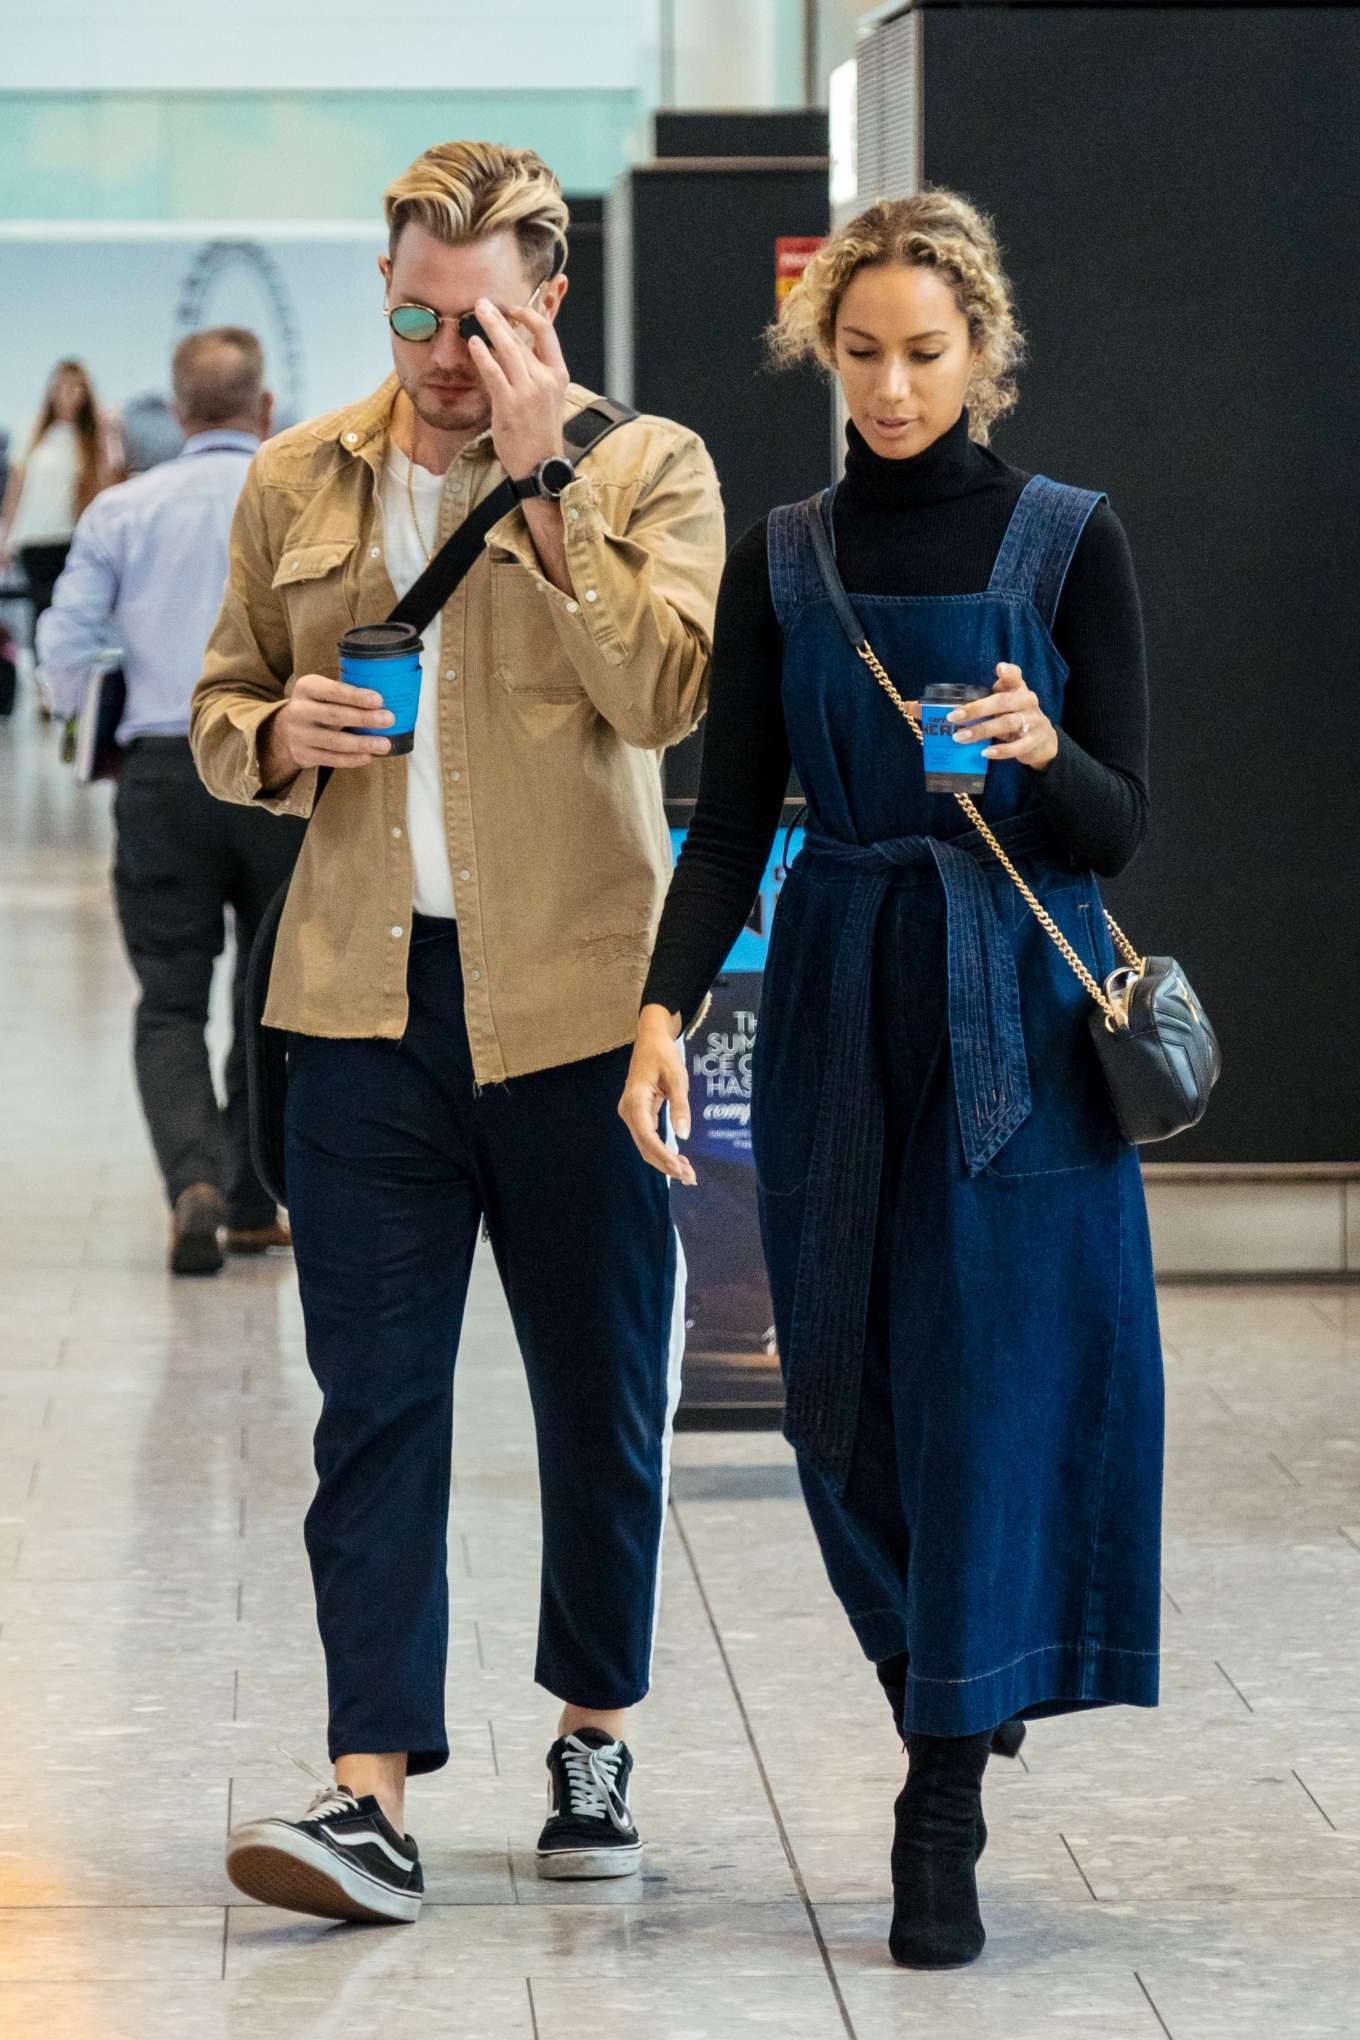 Leona Lewis and Dennis Jauch - Arrives at Heathrow Airport in London